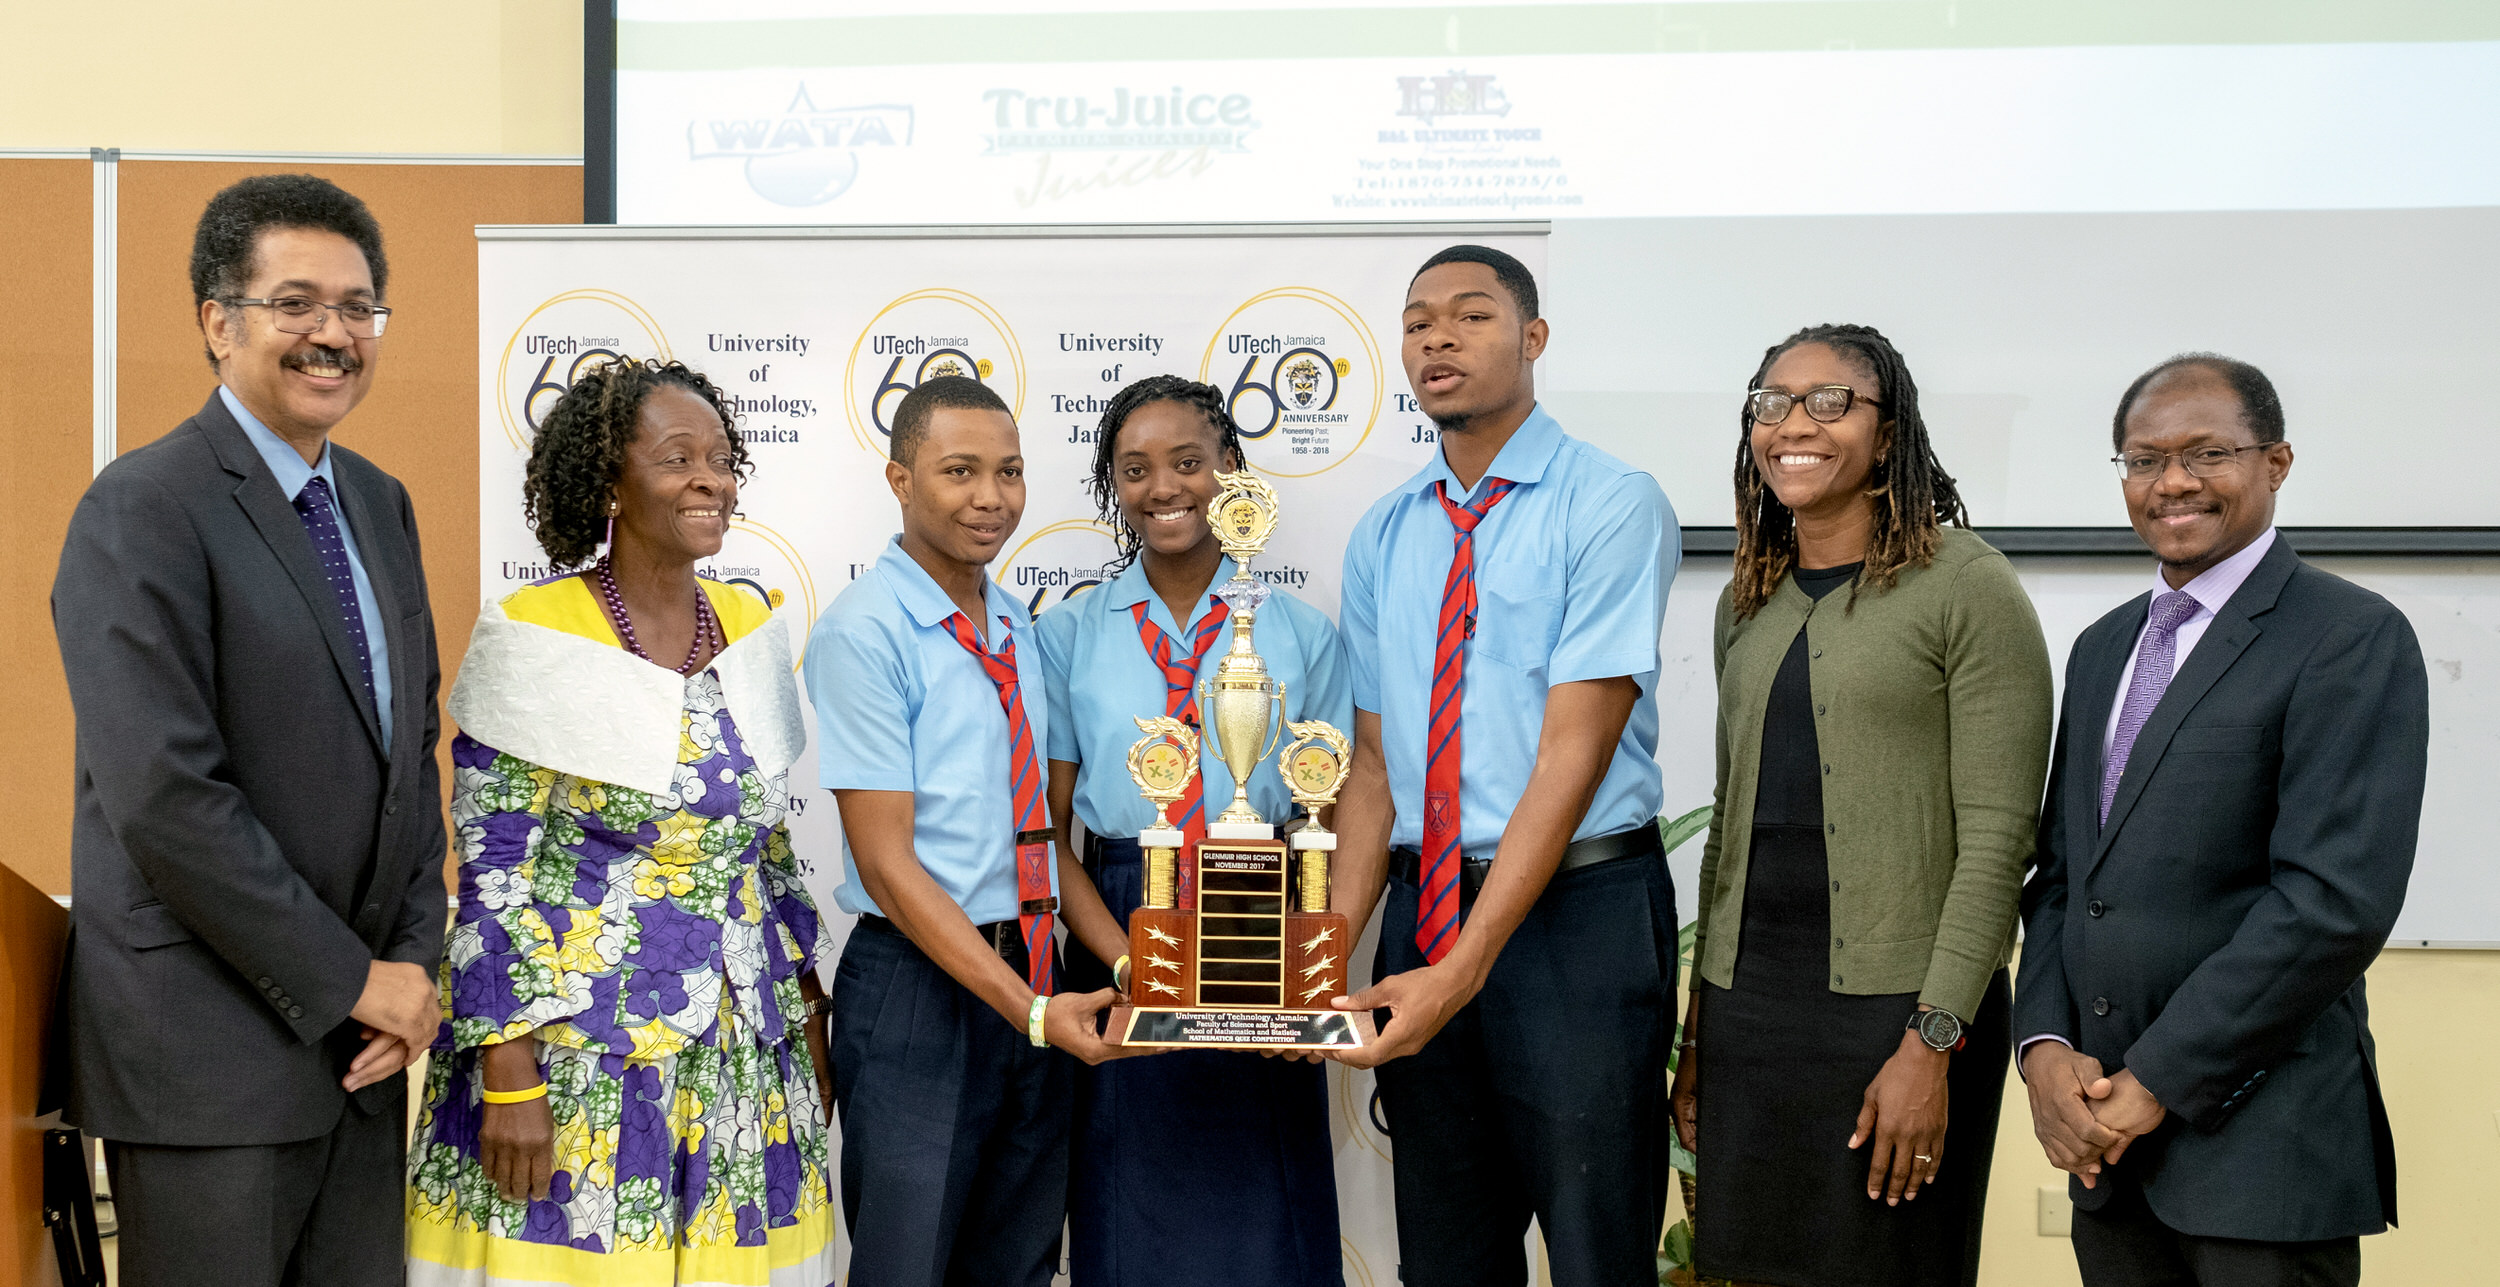 Knox College Wins 2nd Annual UTech, Jamaica Mathematics Quiz Competition